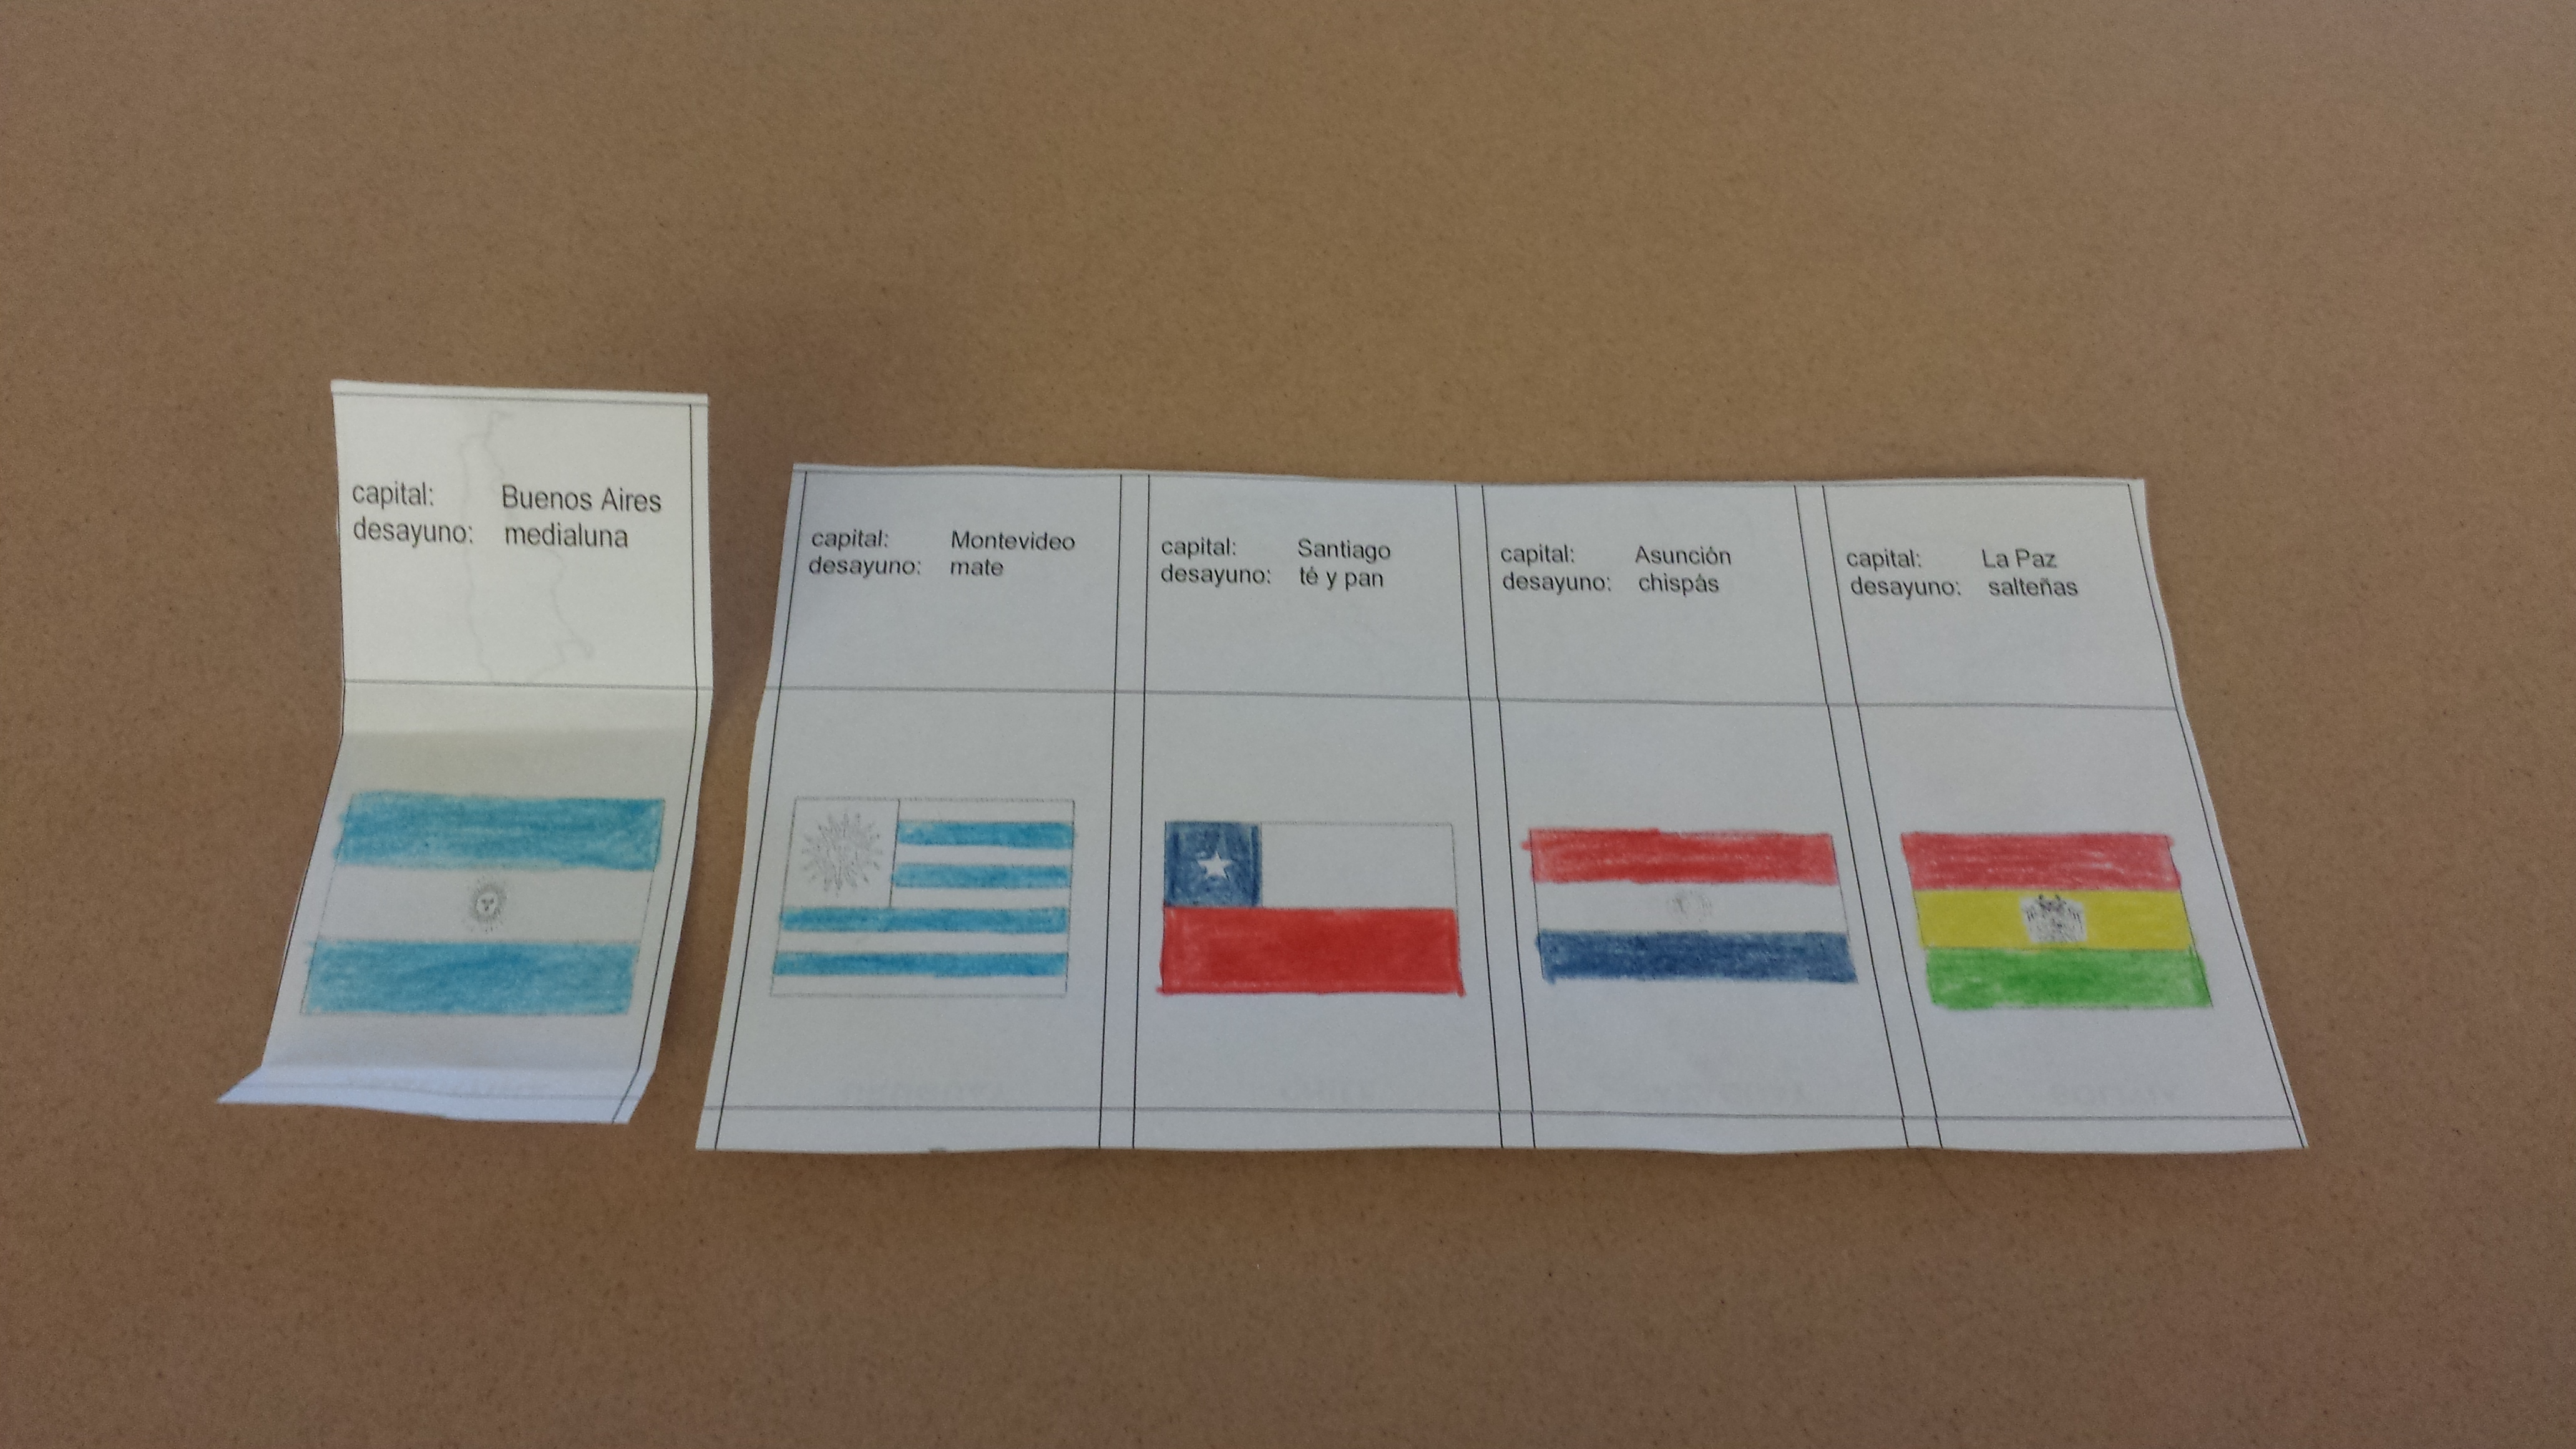 Using the slide with all of the flags stimulated the students to make comparisons of the flags.